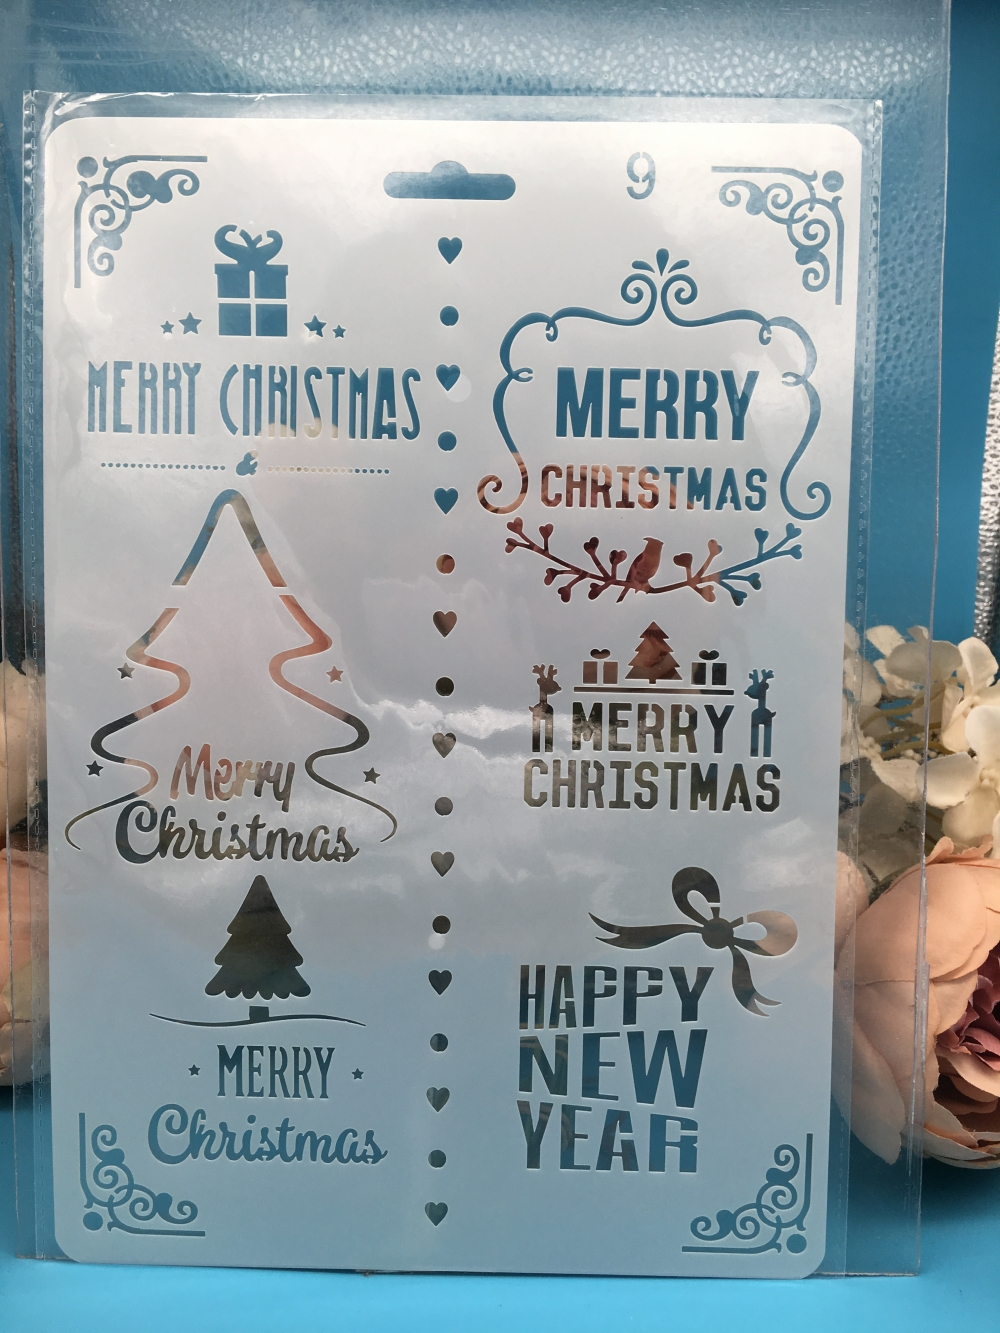 1Pcs A4 Tree Words Merry Christmas DIY Craft Layering Stencils Wall Paint Scrapbook Stamp Embossing Album Decorative Template